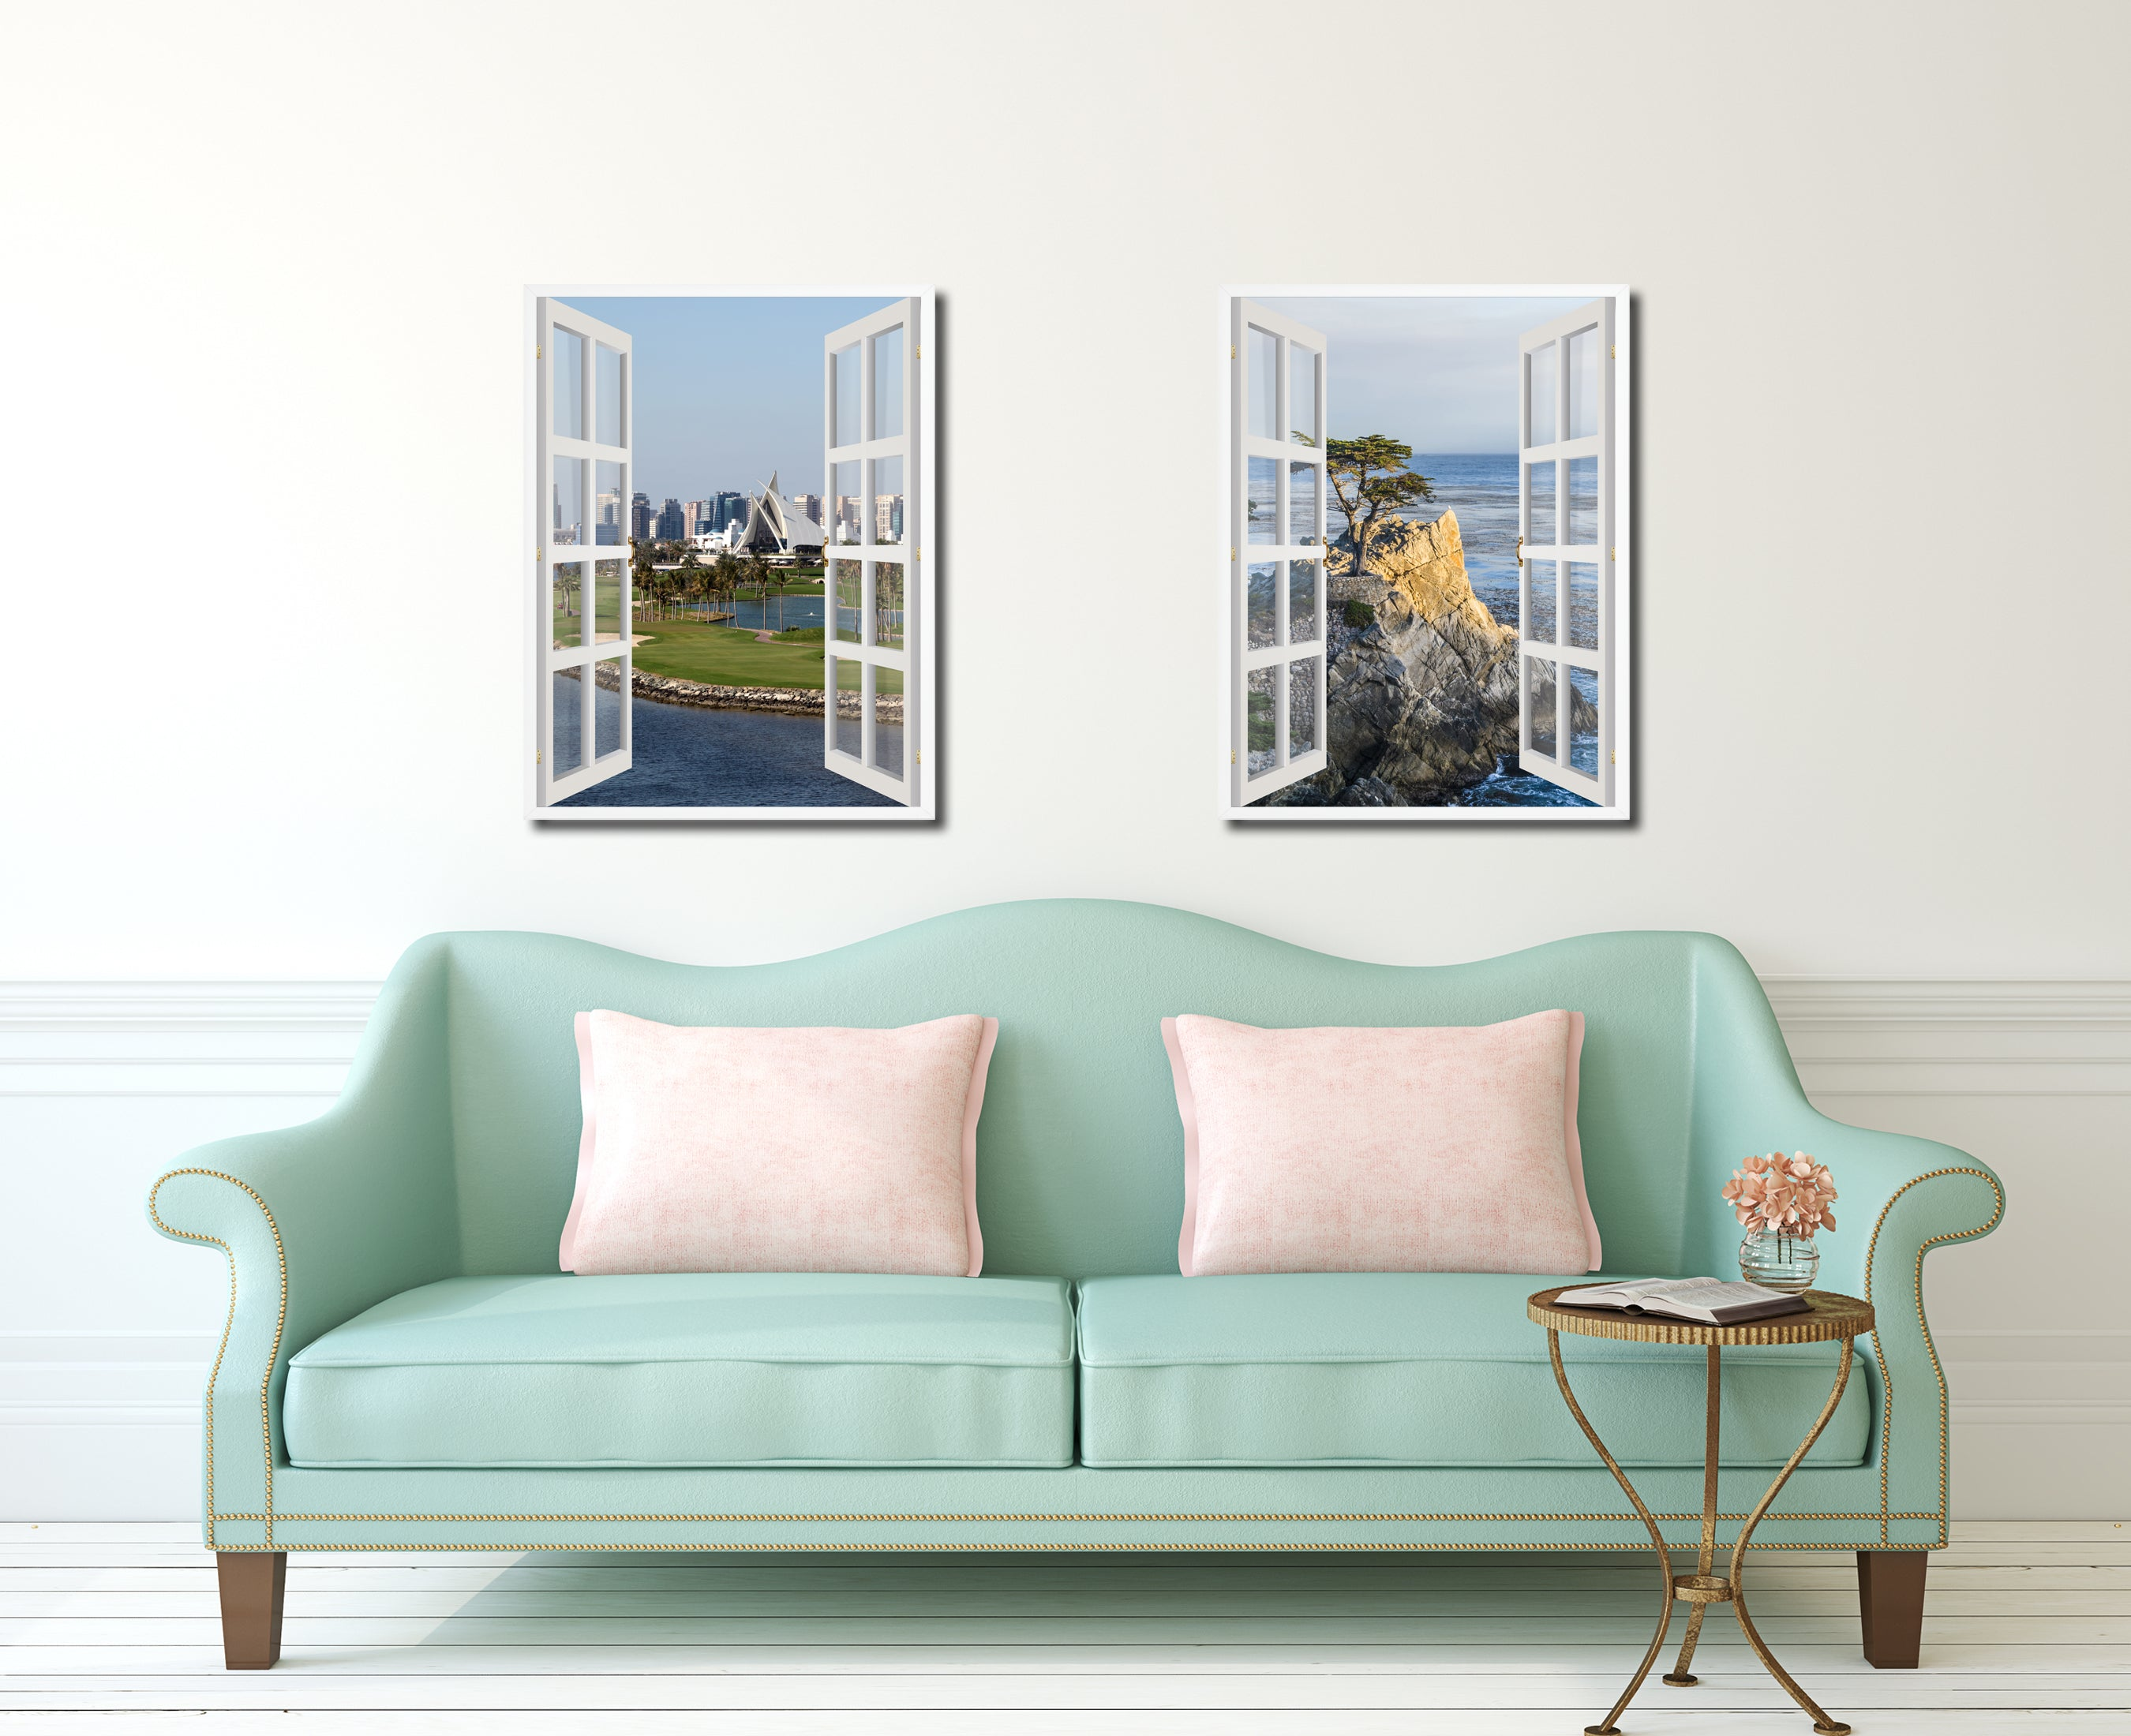 Dubai Creek Golf Course Picture French Window Canvas Print With Frame Gifts  Home Decor Wall Art